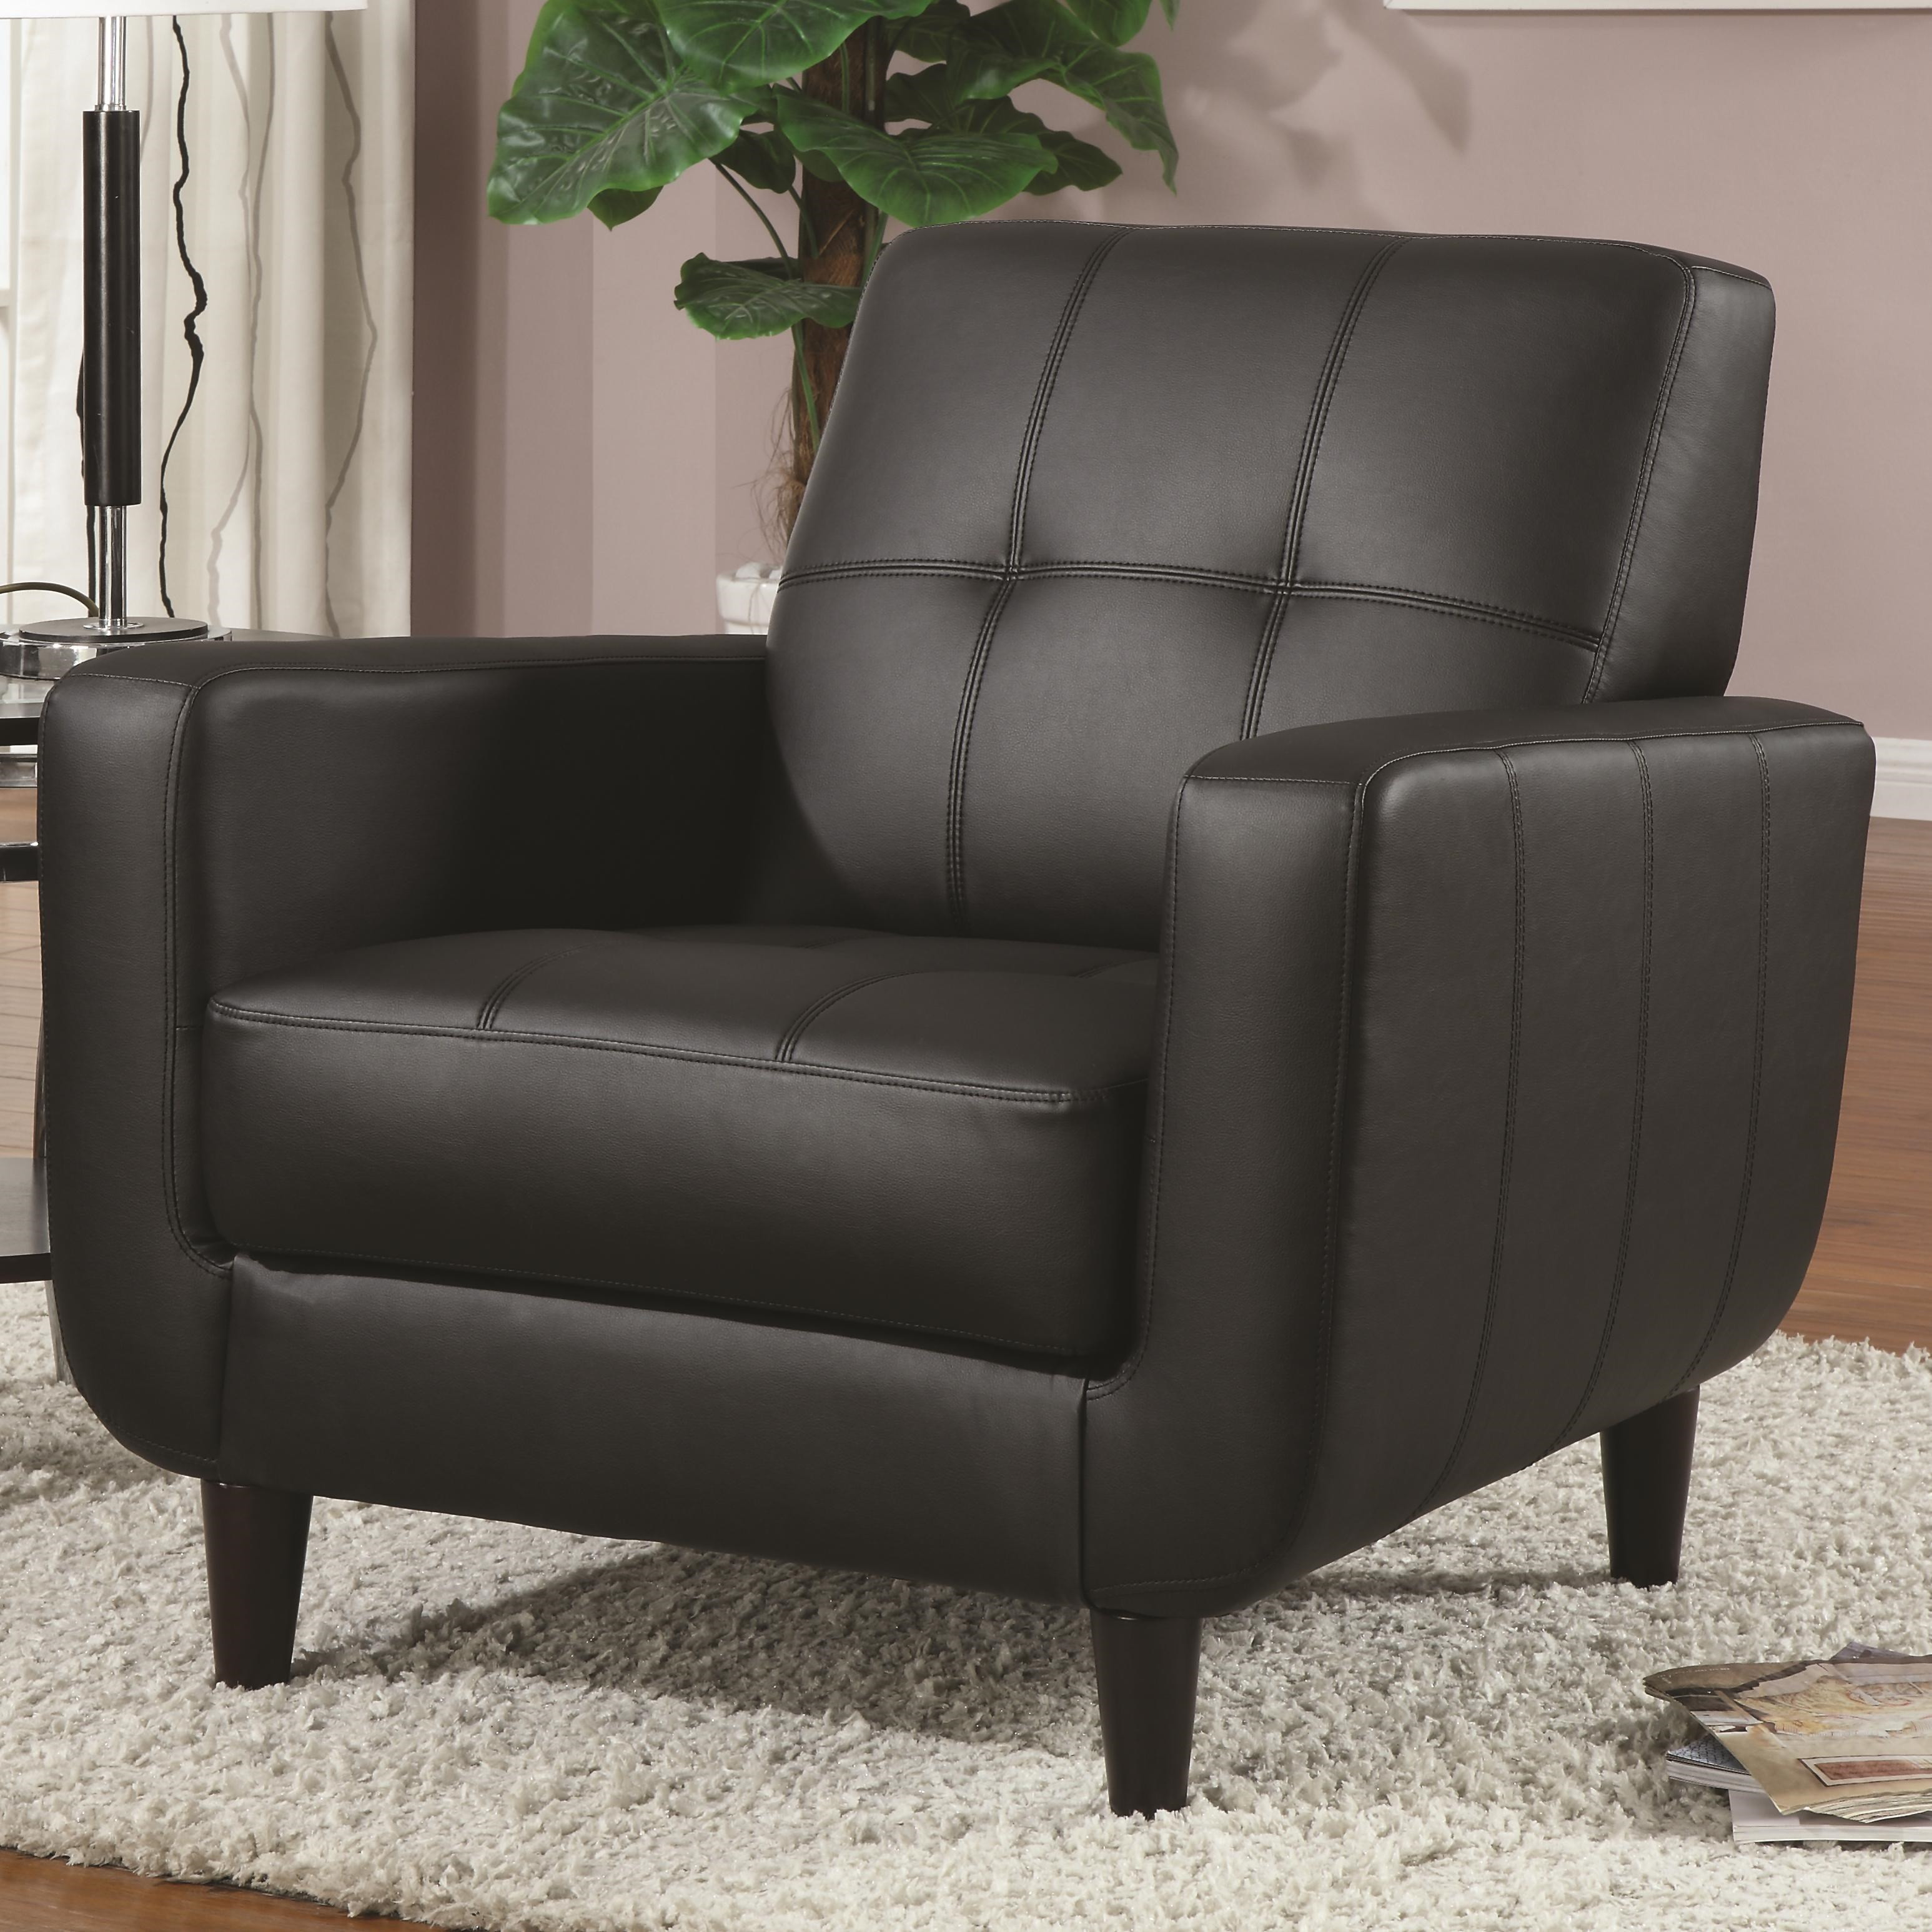 Coaster Accent Seating Accent Chair W/ Round Wood Legs